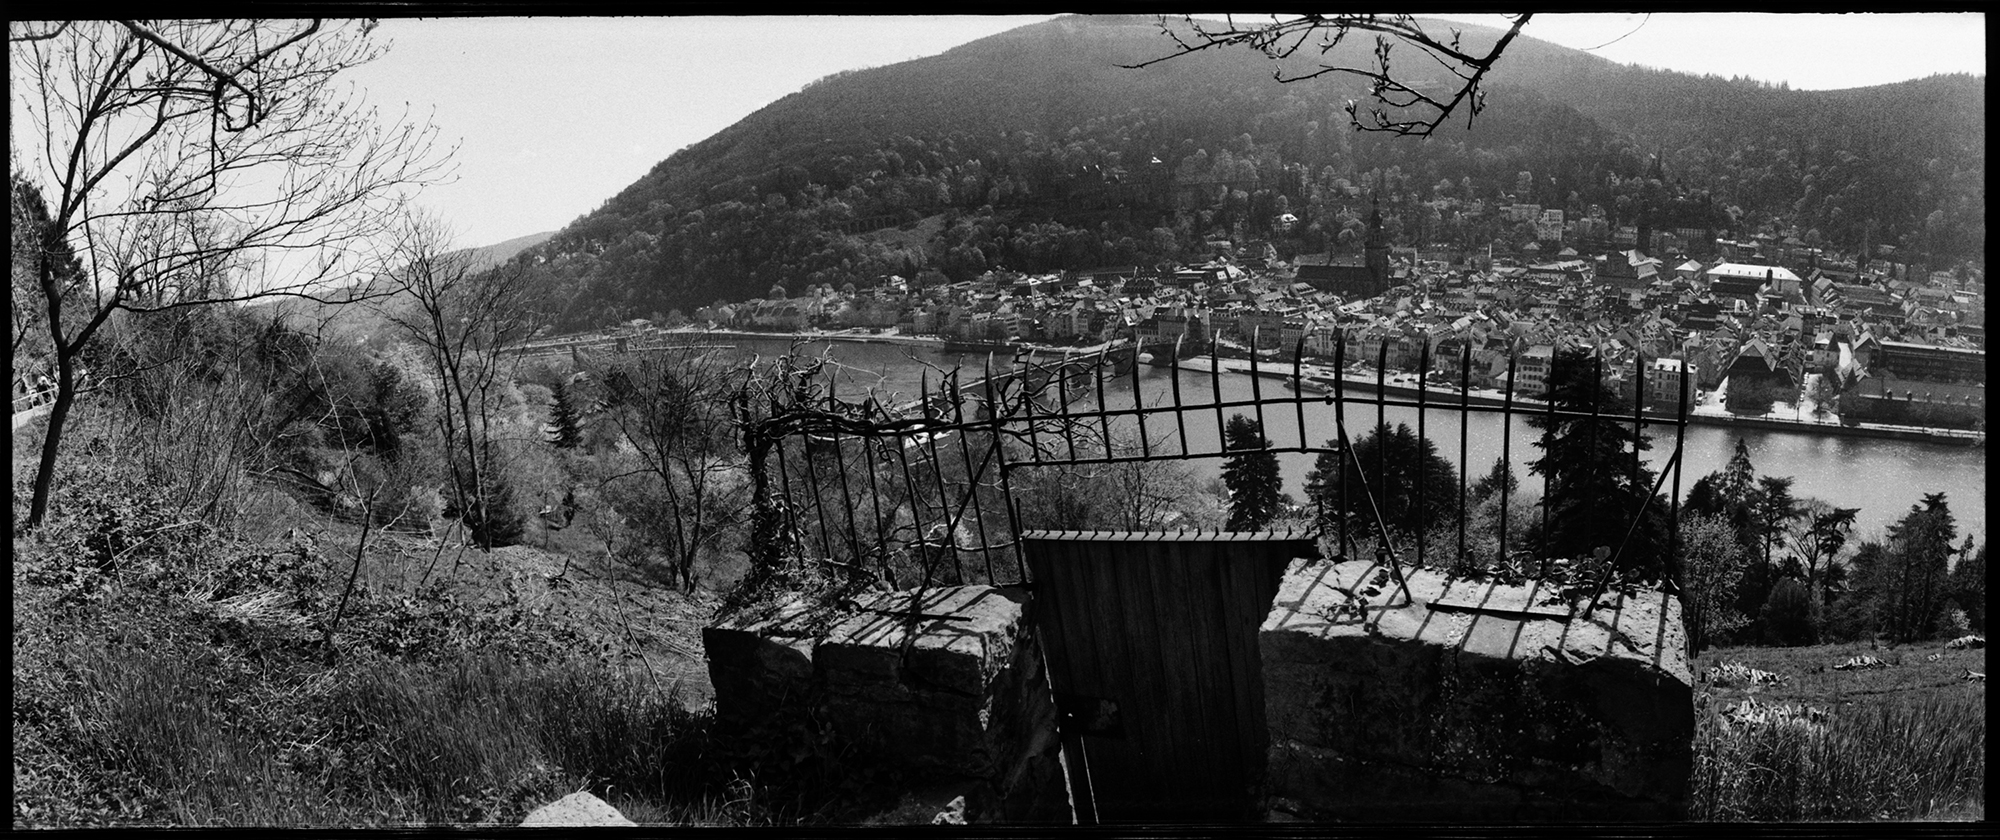 Heidelberg, Germany by Laurent Orseau #6